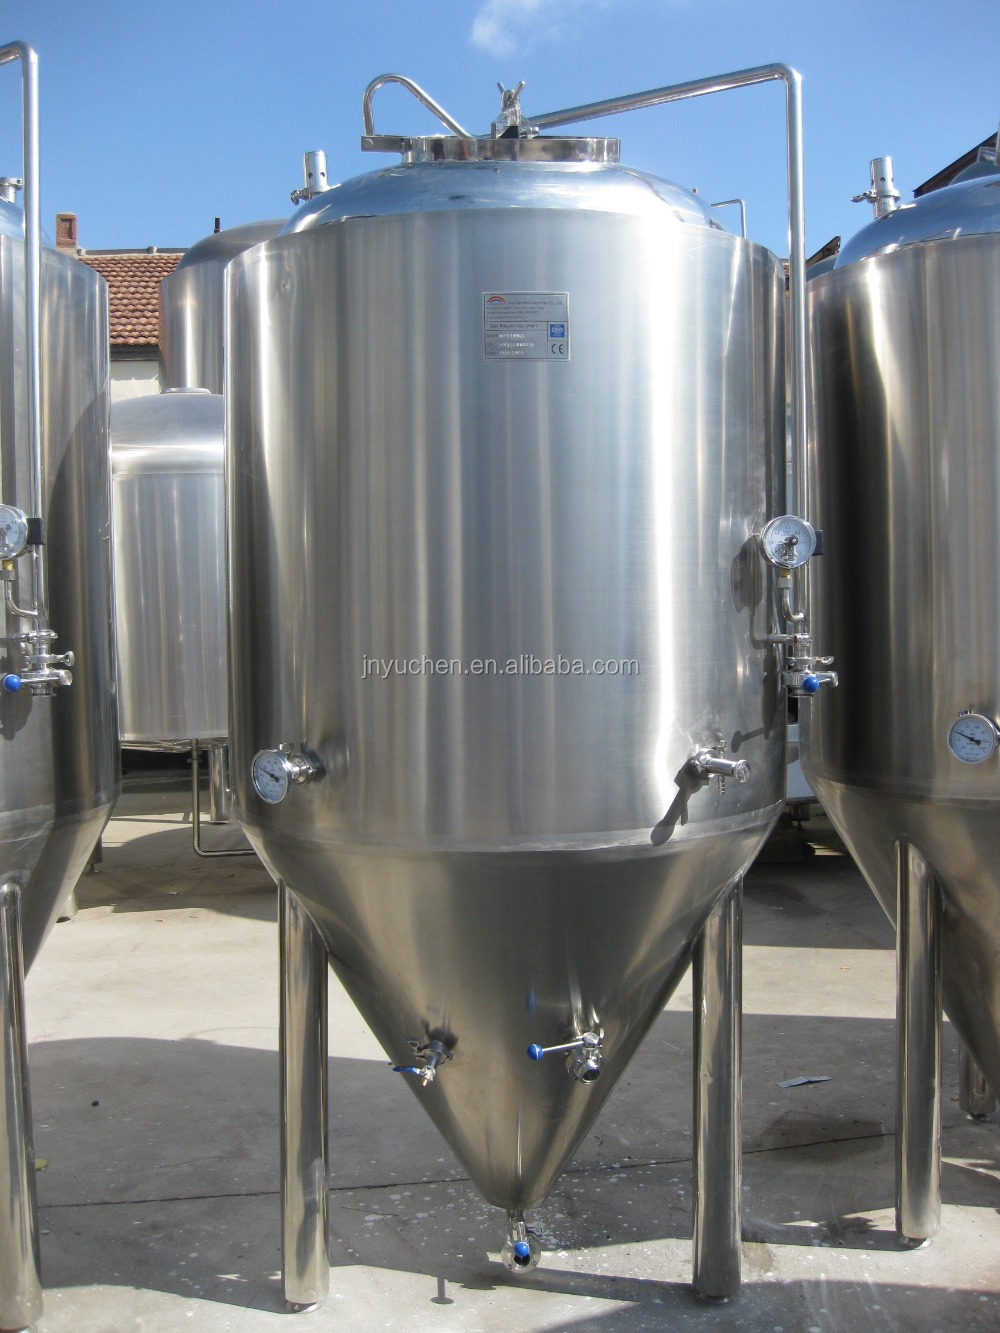 10bbl Jinan beer brewing equipment manufacturer/beer fermentation tank/beer brewery system in Shandong